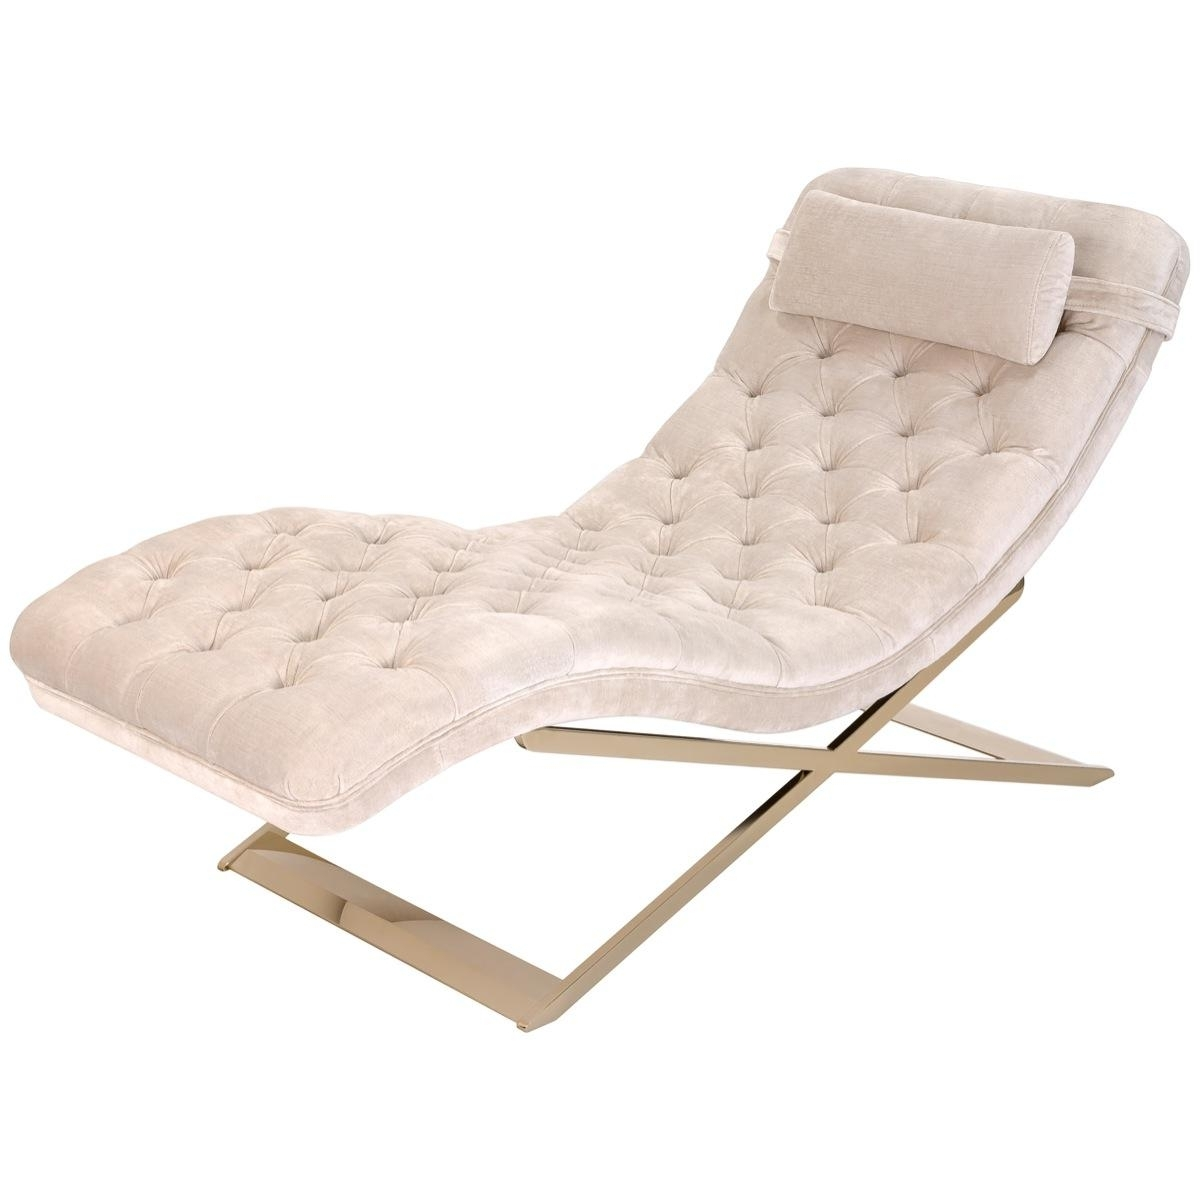 Nampa Upholstered Chaise Lounge Chair – Safavieh Couture Within Recent White Chaise Lounge Chairs (View 6 of 15)